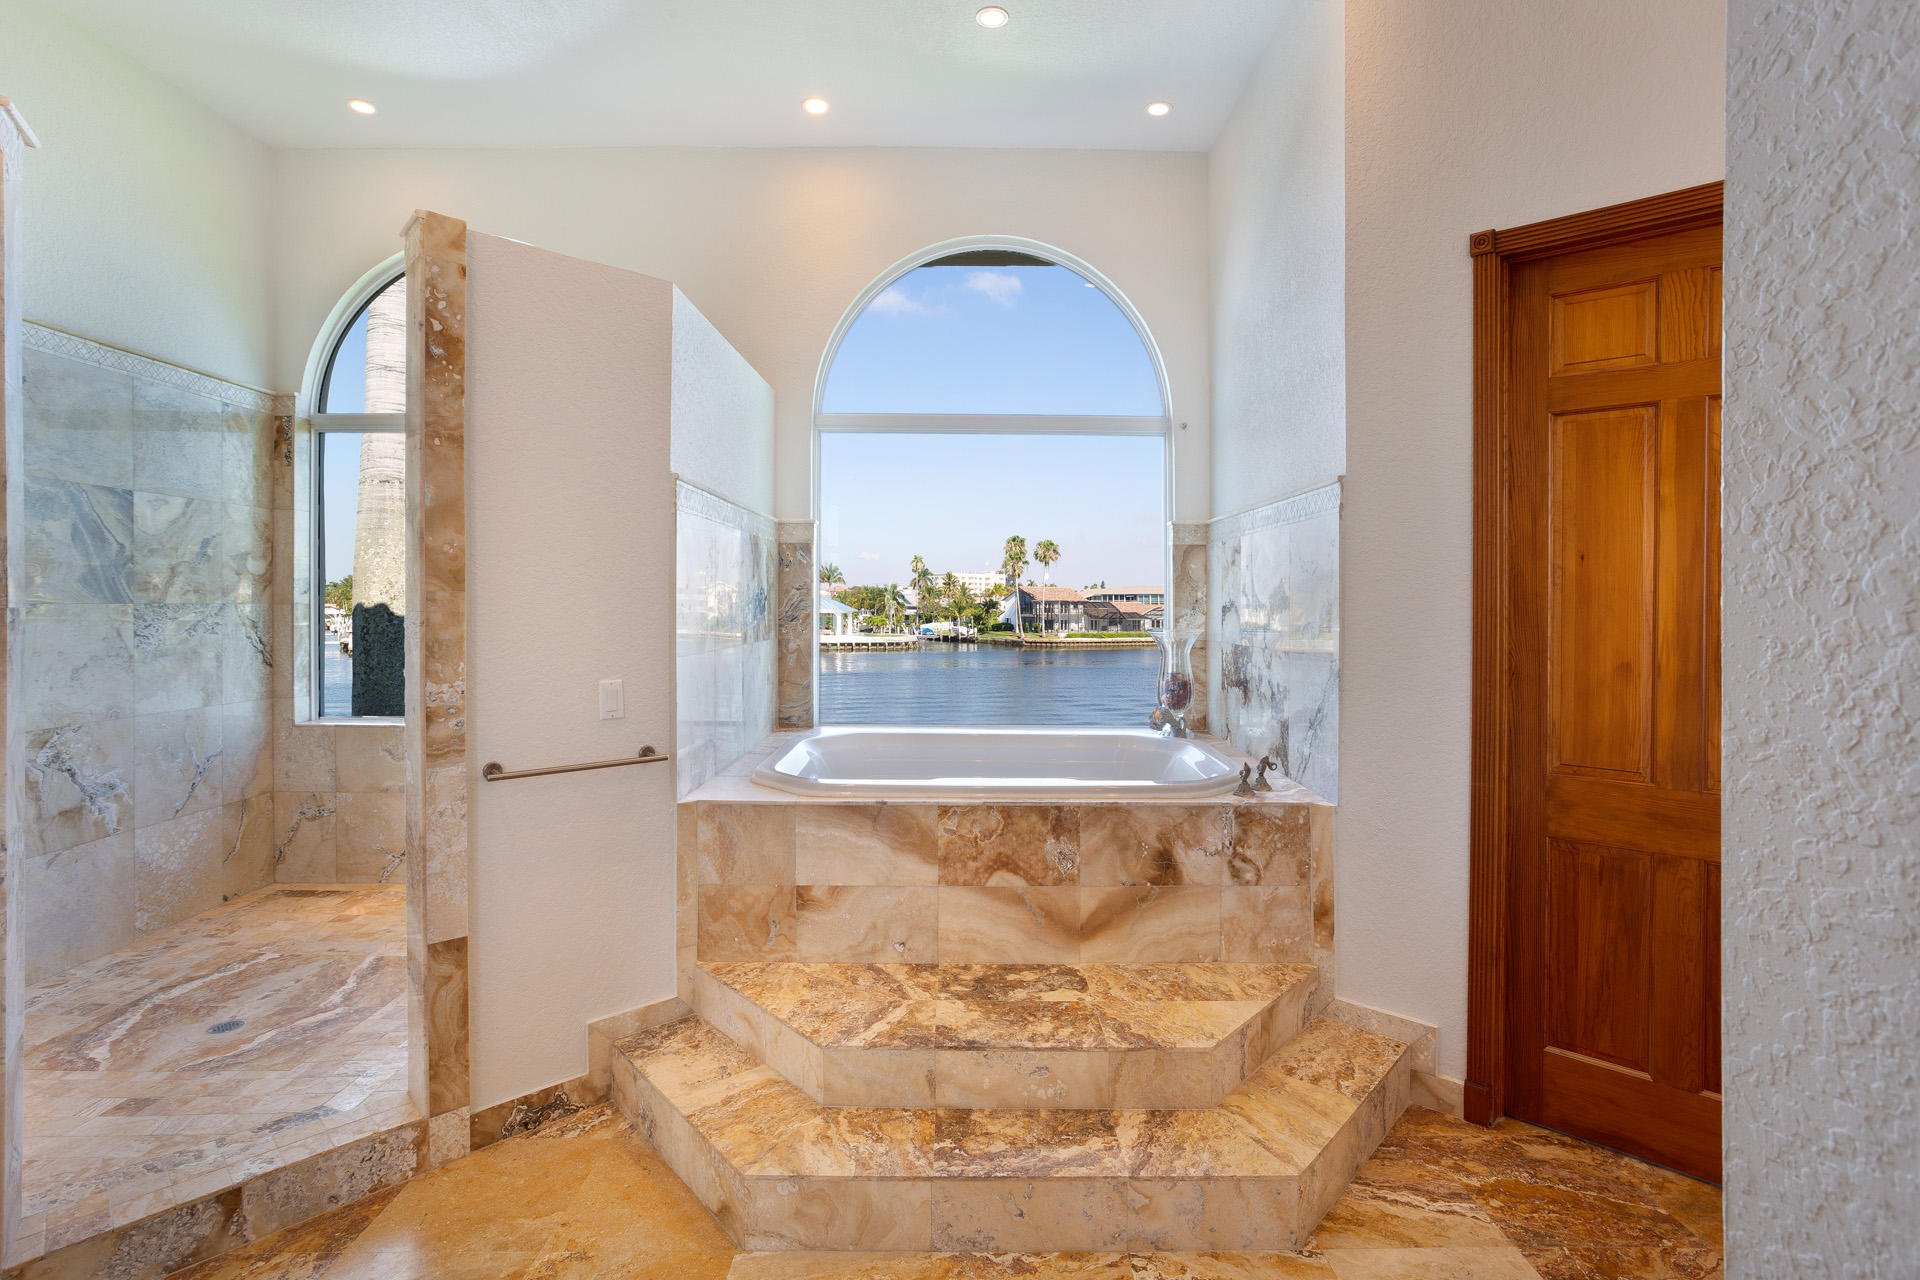 RIDGE HARBOUR HOMES FOR SALE